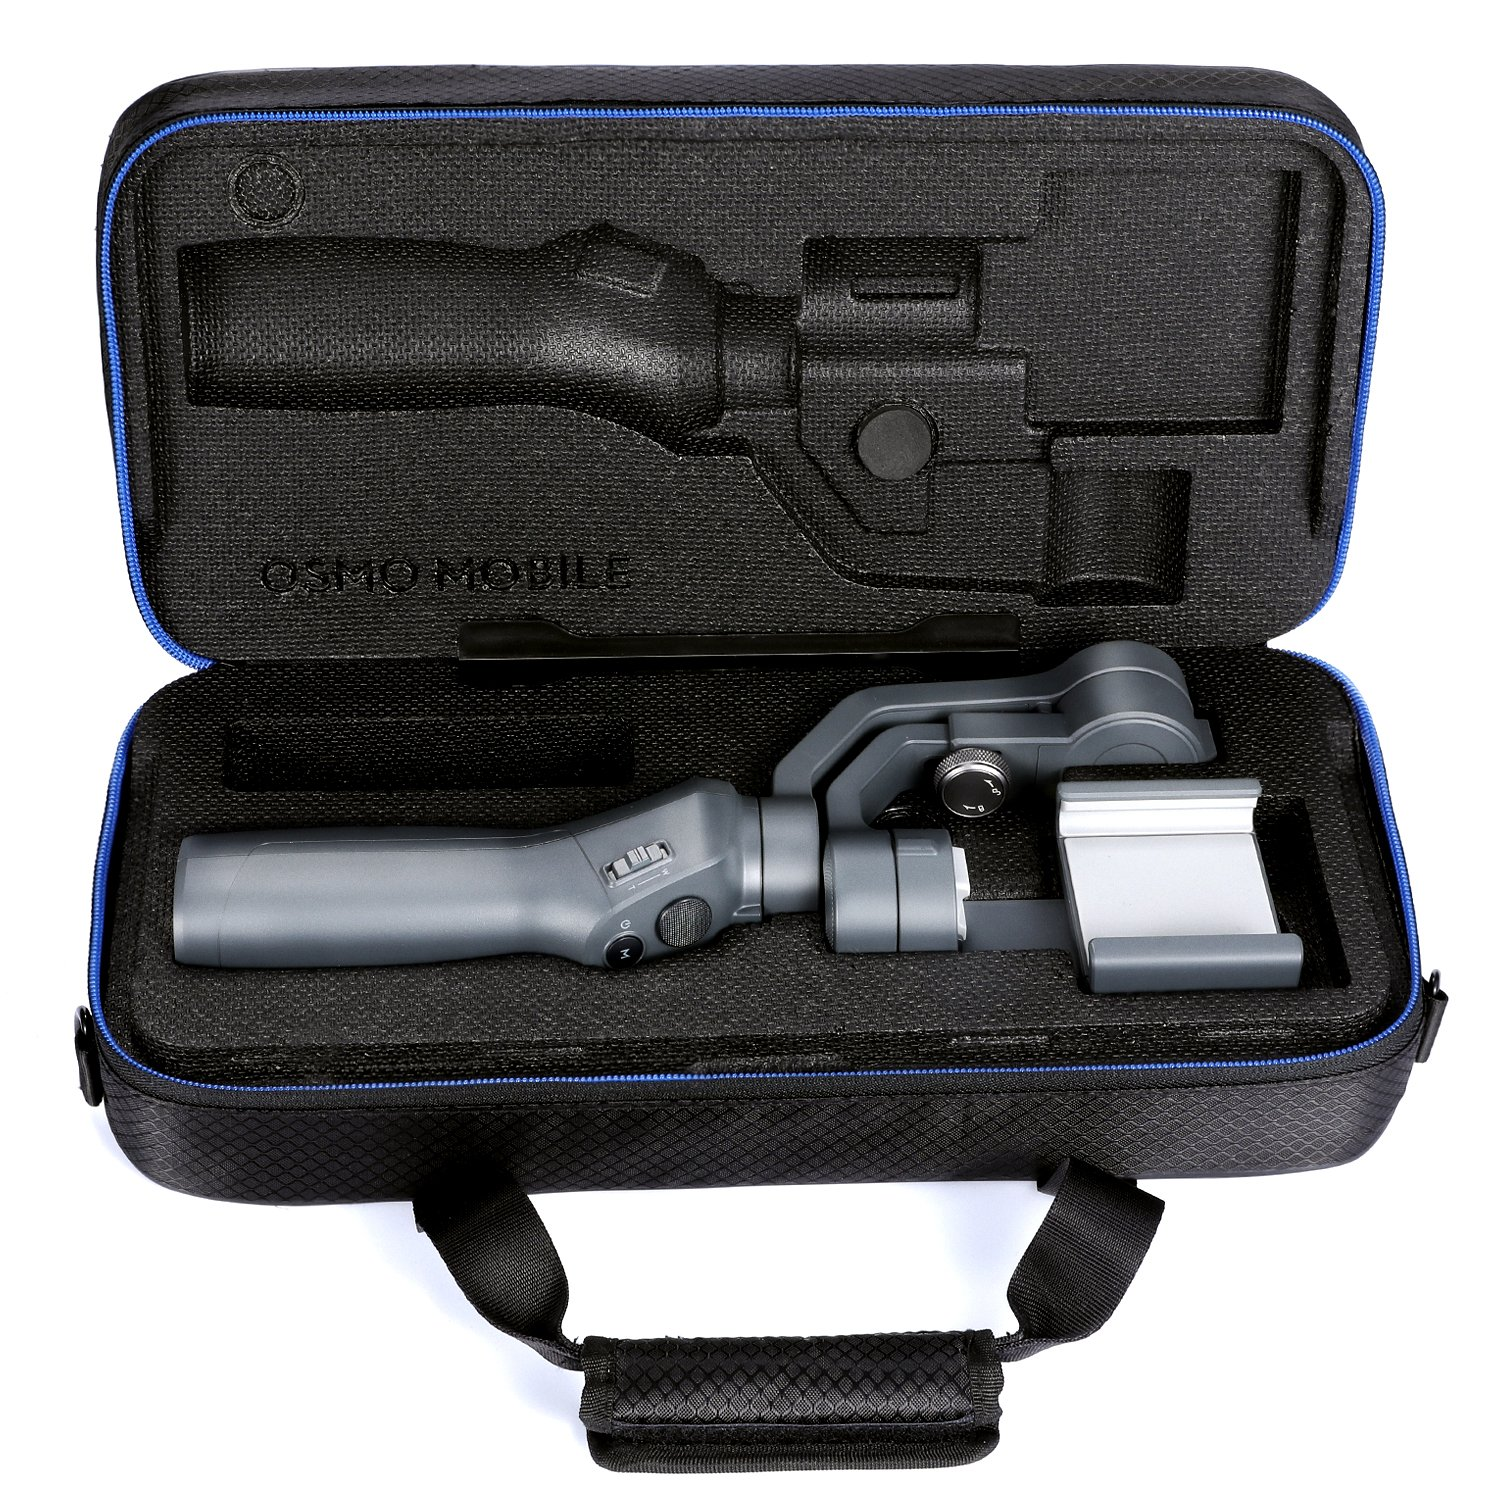 DJI Osmo Mobile 2 Carrying Case by DACCKIT - fit for DJI osmo mobile 2 Handheld Smartphone Gimbal with tripod combo, Extension Stick, Base by DACCKIT (Image #2)